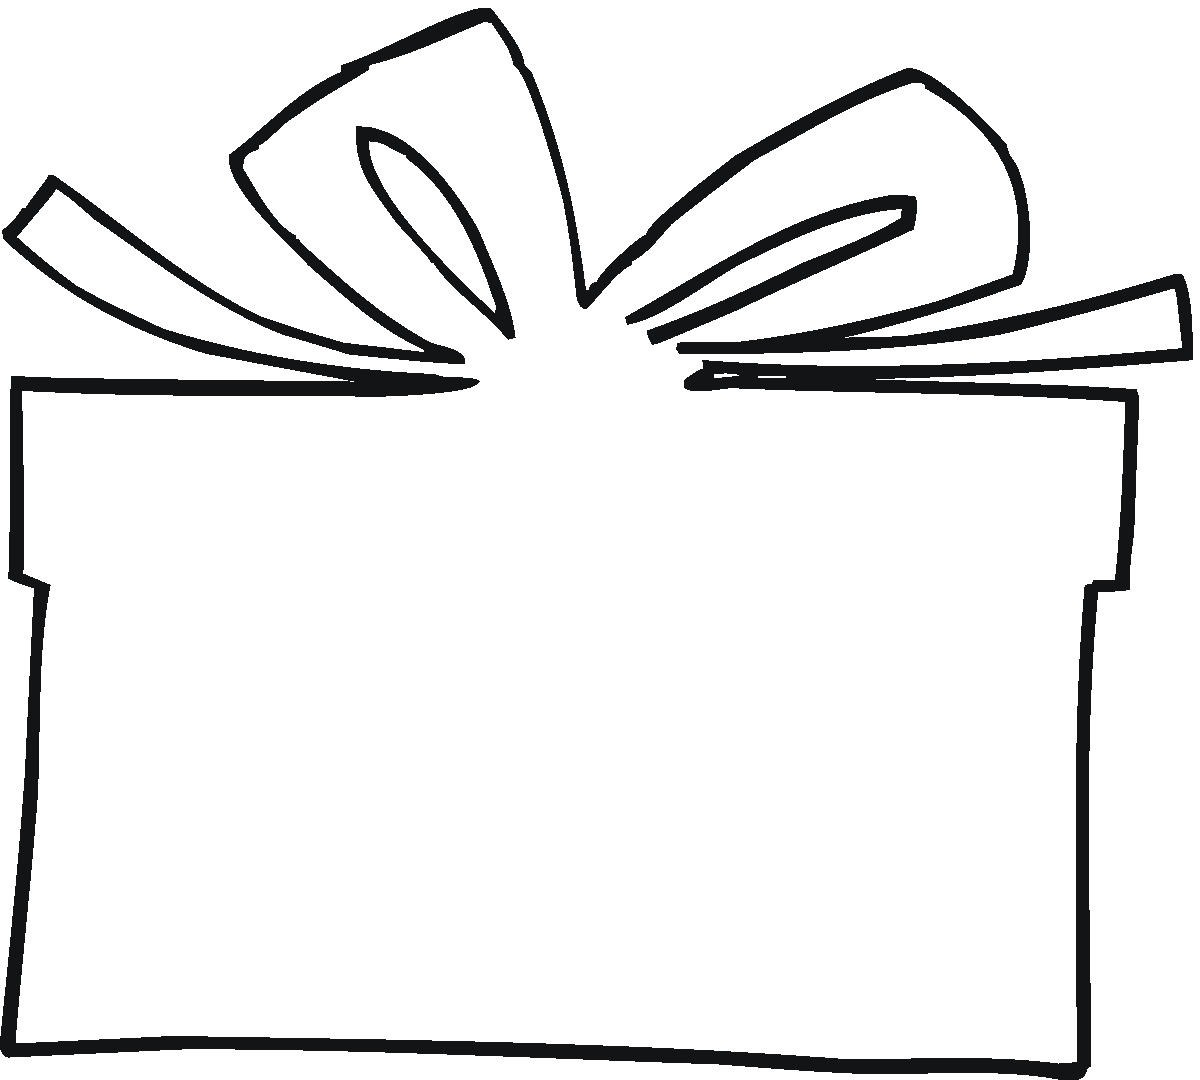 Boxes clipart outline. Awesome of box black